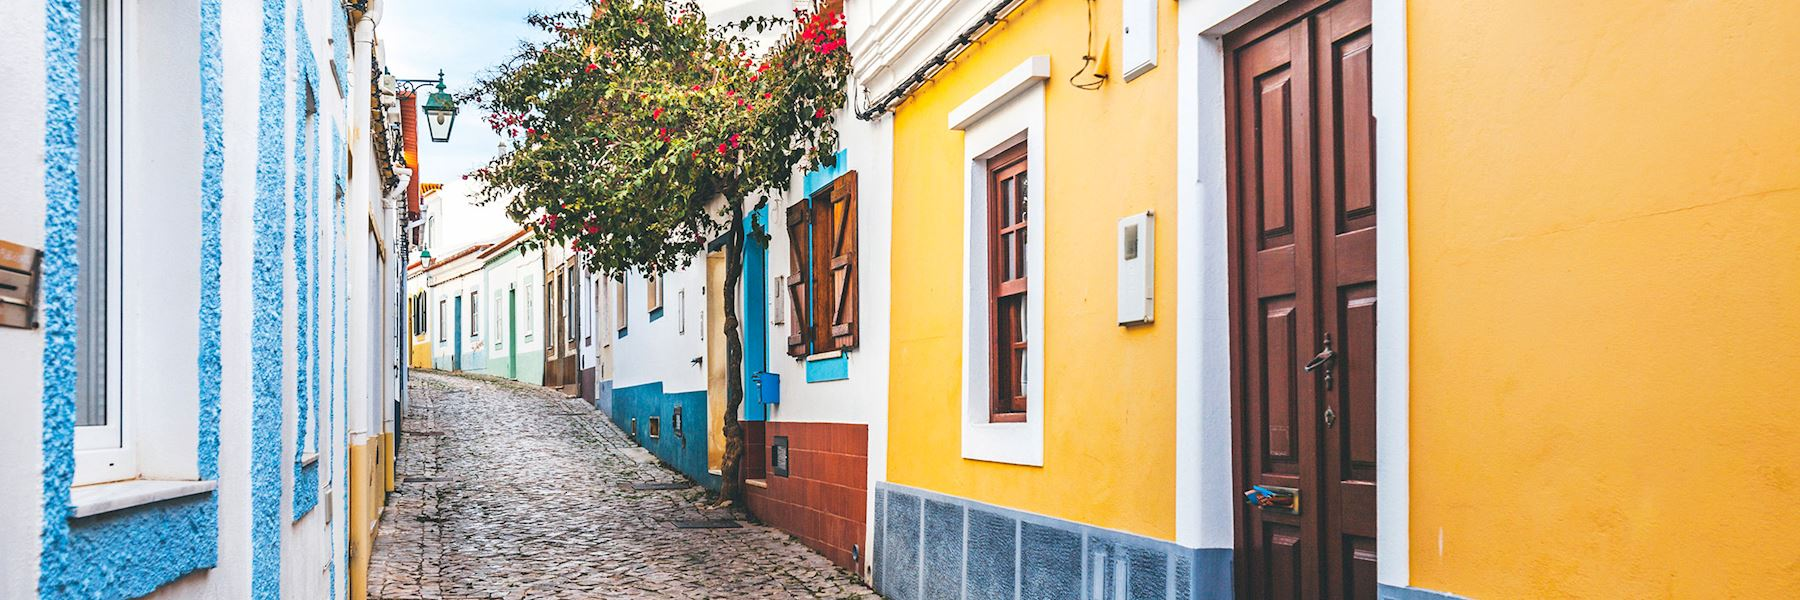 Accommodations in Portugal